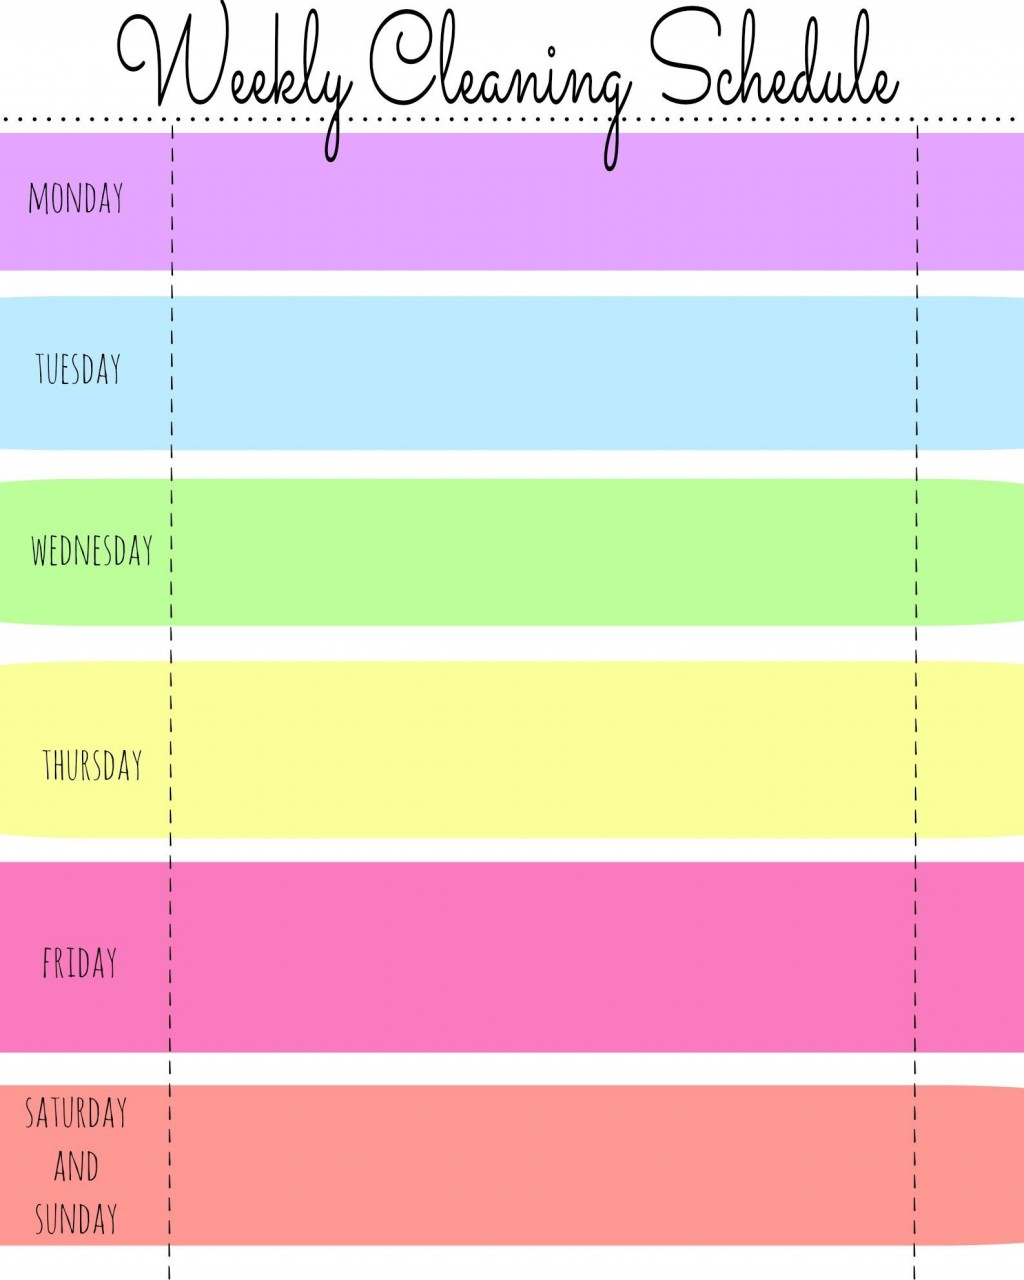 003 Dreaded Free Printable Weekly Cleaning Schedule Template Sample  OfficeLarge